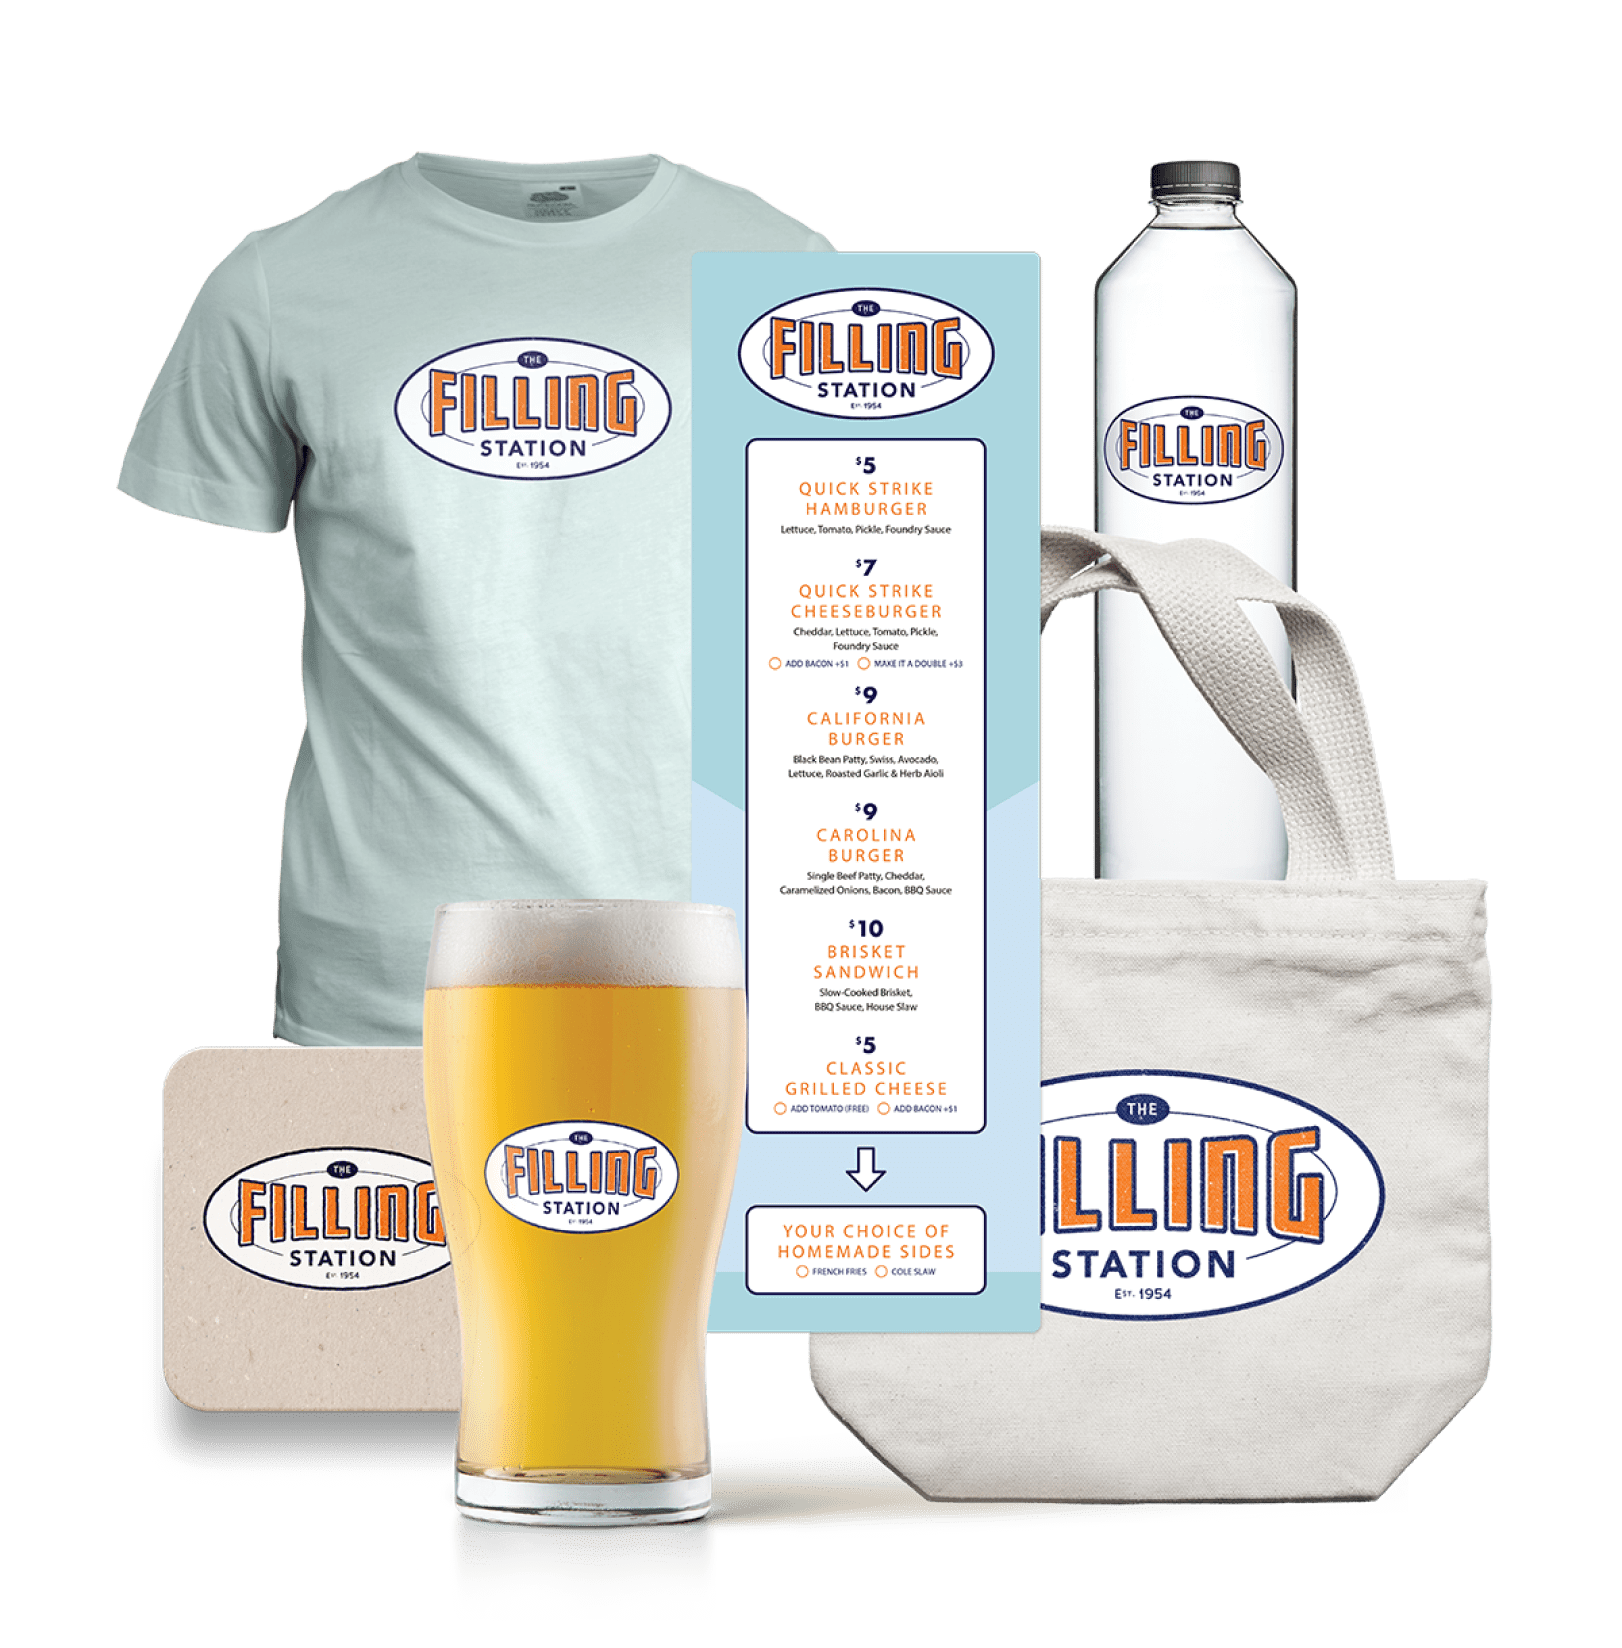 An image of the logo and branded merchandise for The Filling Station.